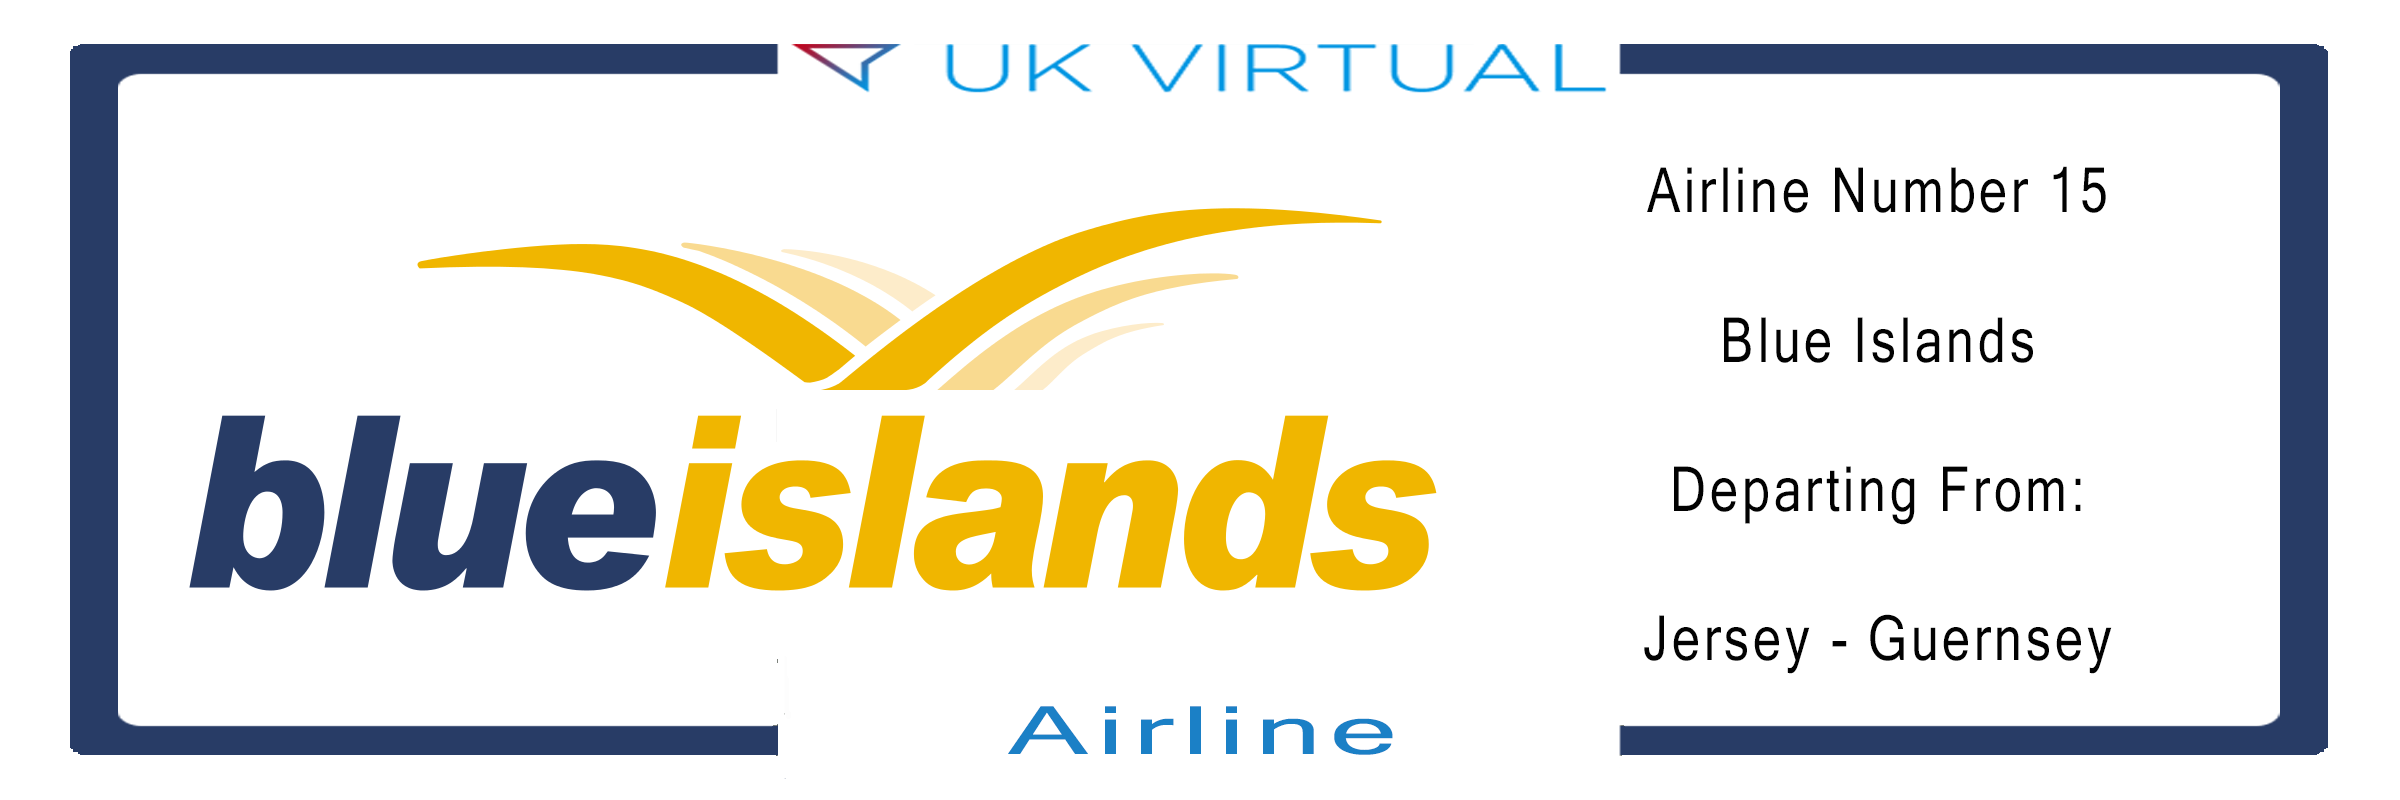 Airline Number 15: Blue Islands